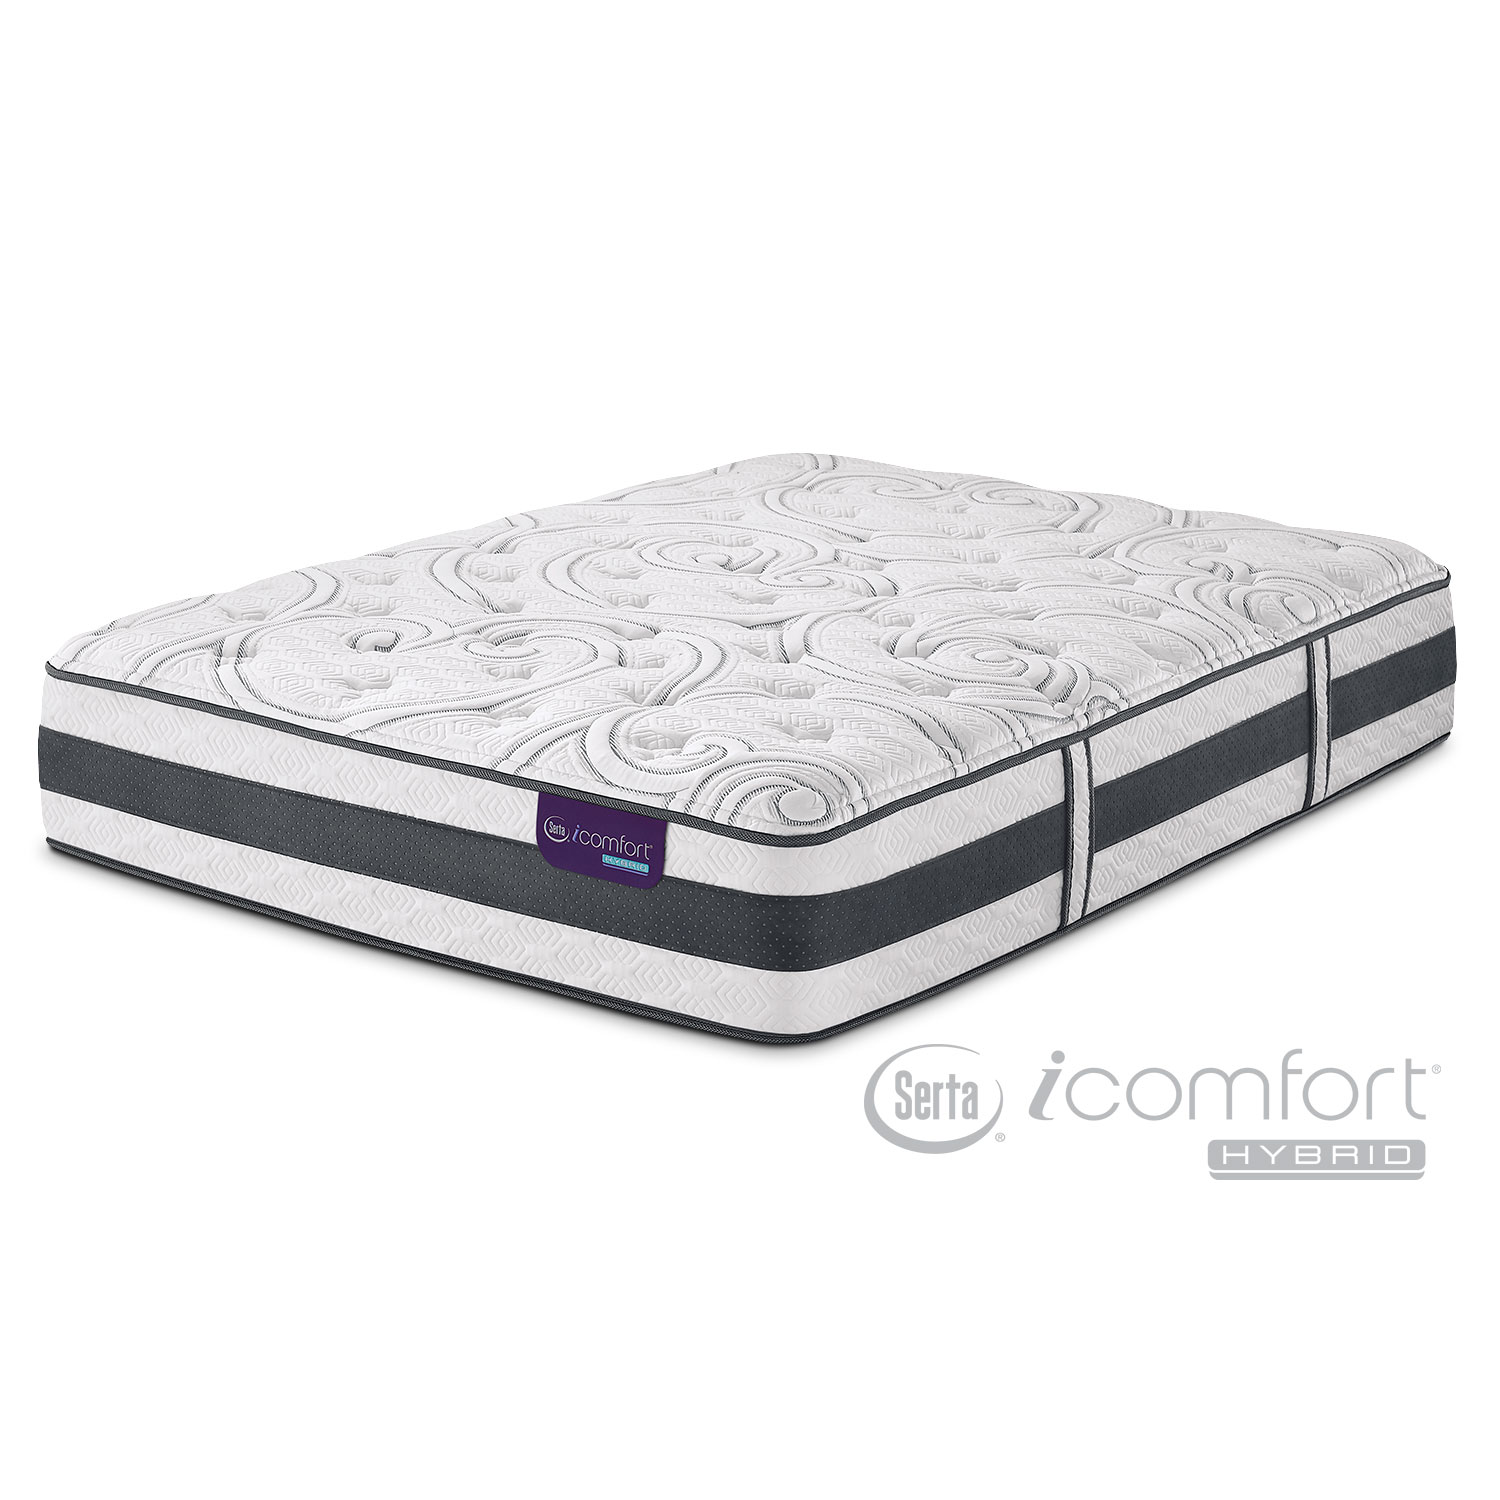 Mattresses and Bedding - Applause II Plush California King Mattress